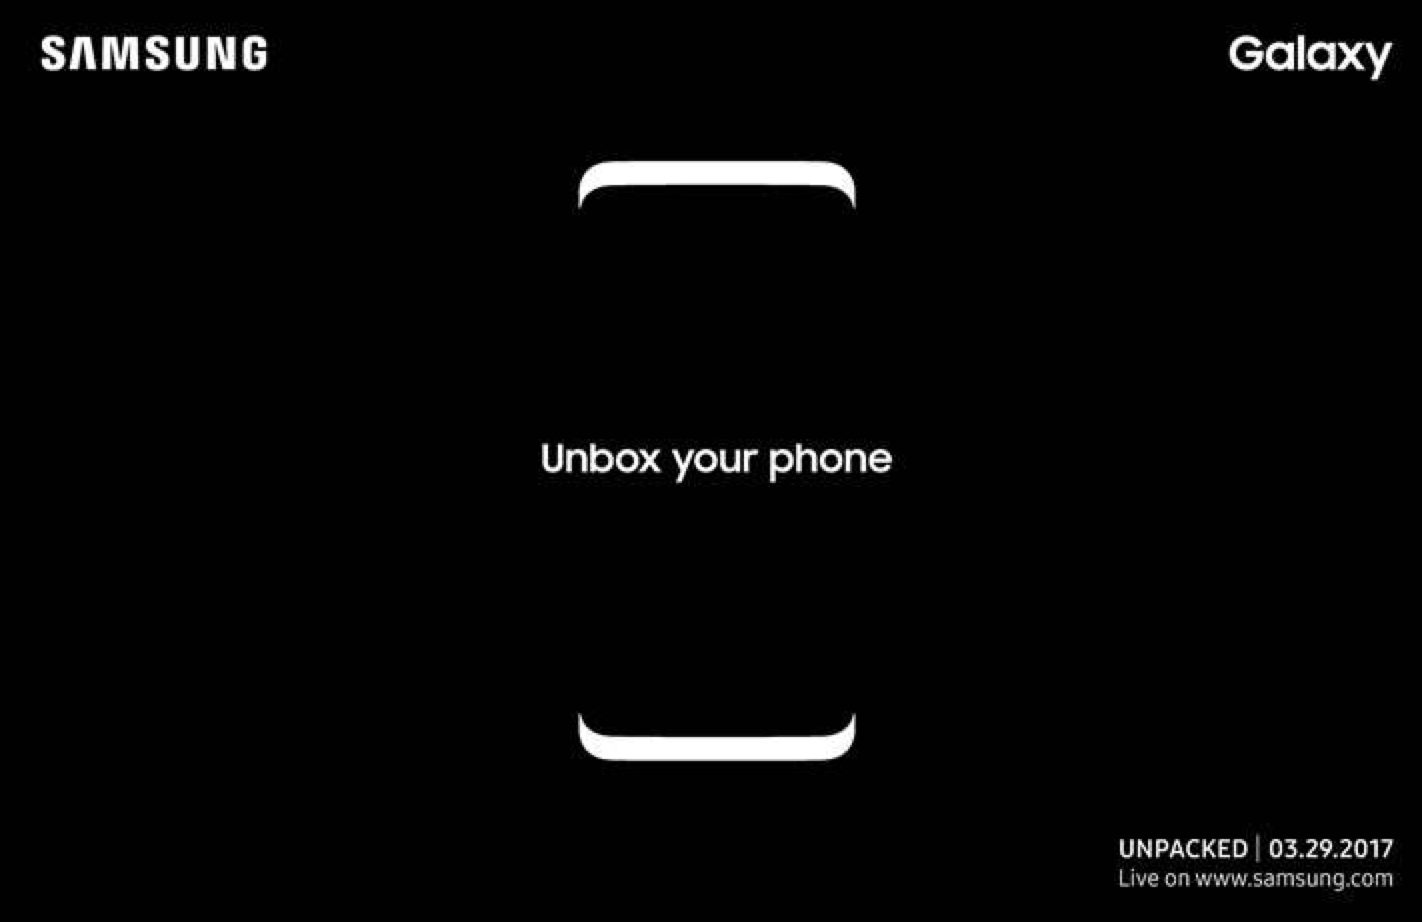 Samsung Galaxy S8 launch invitation